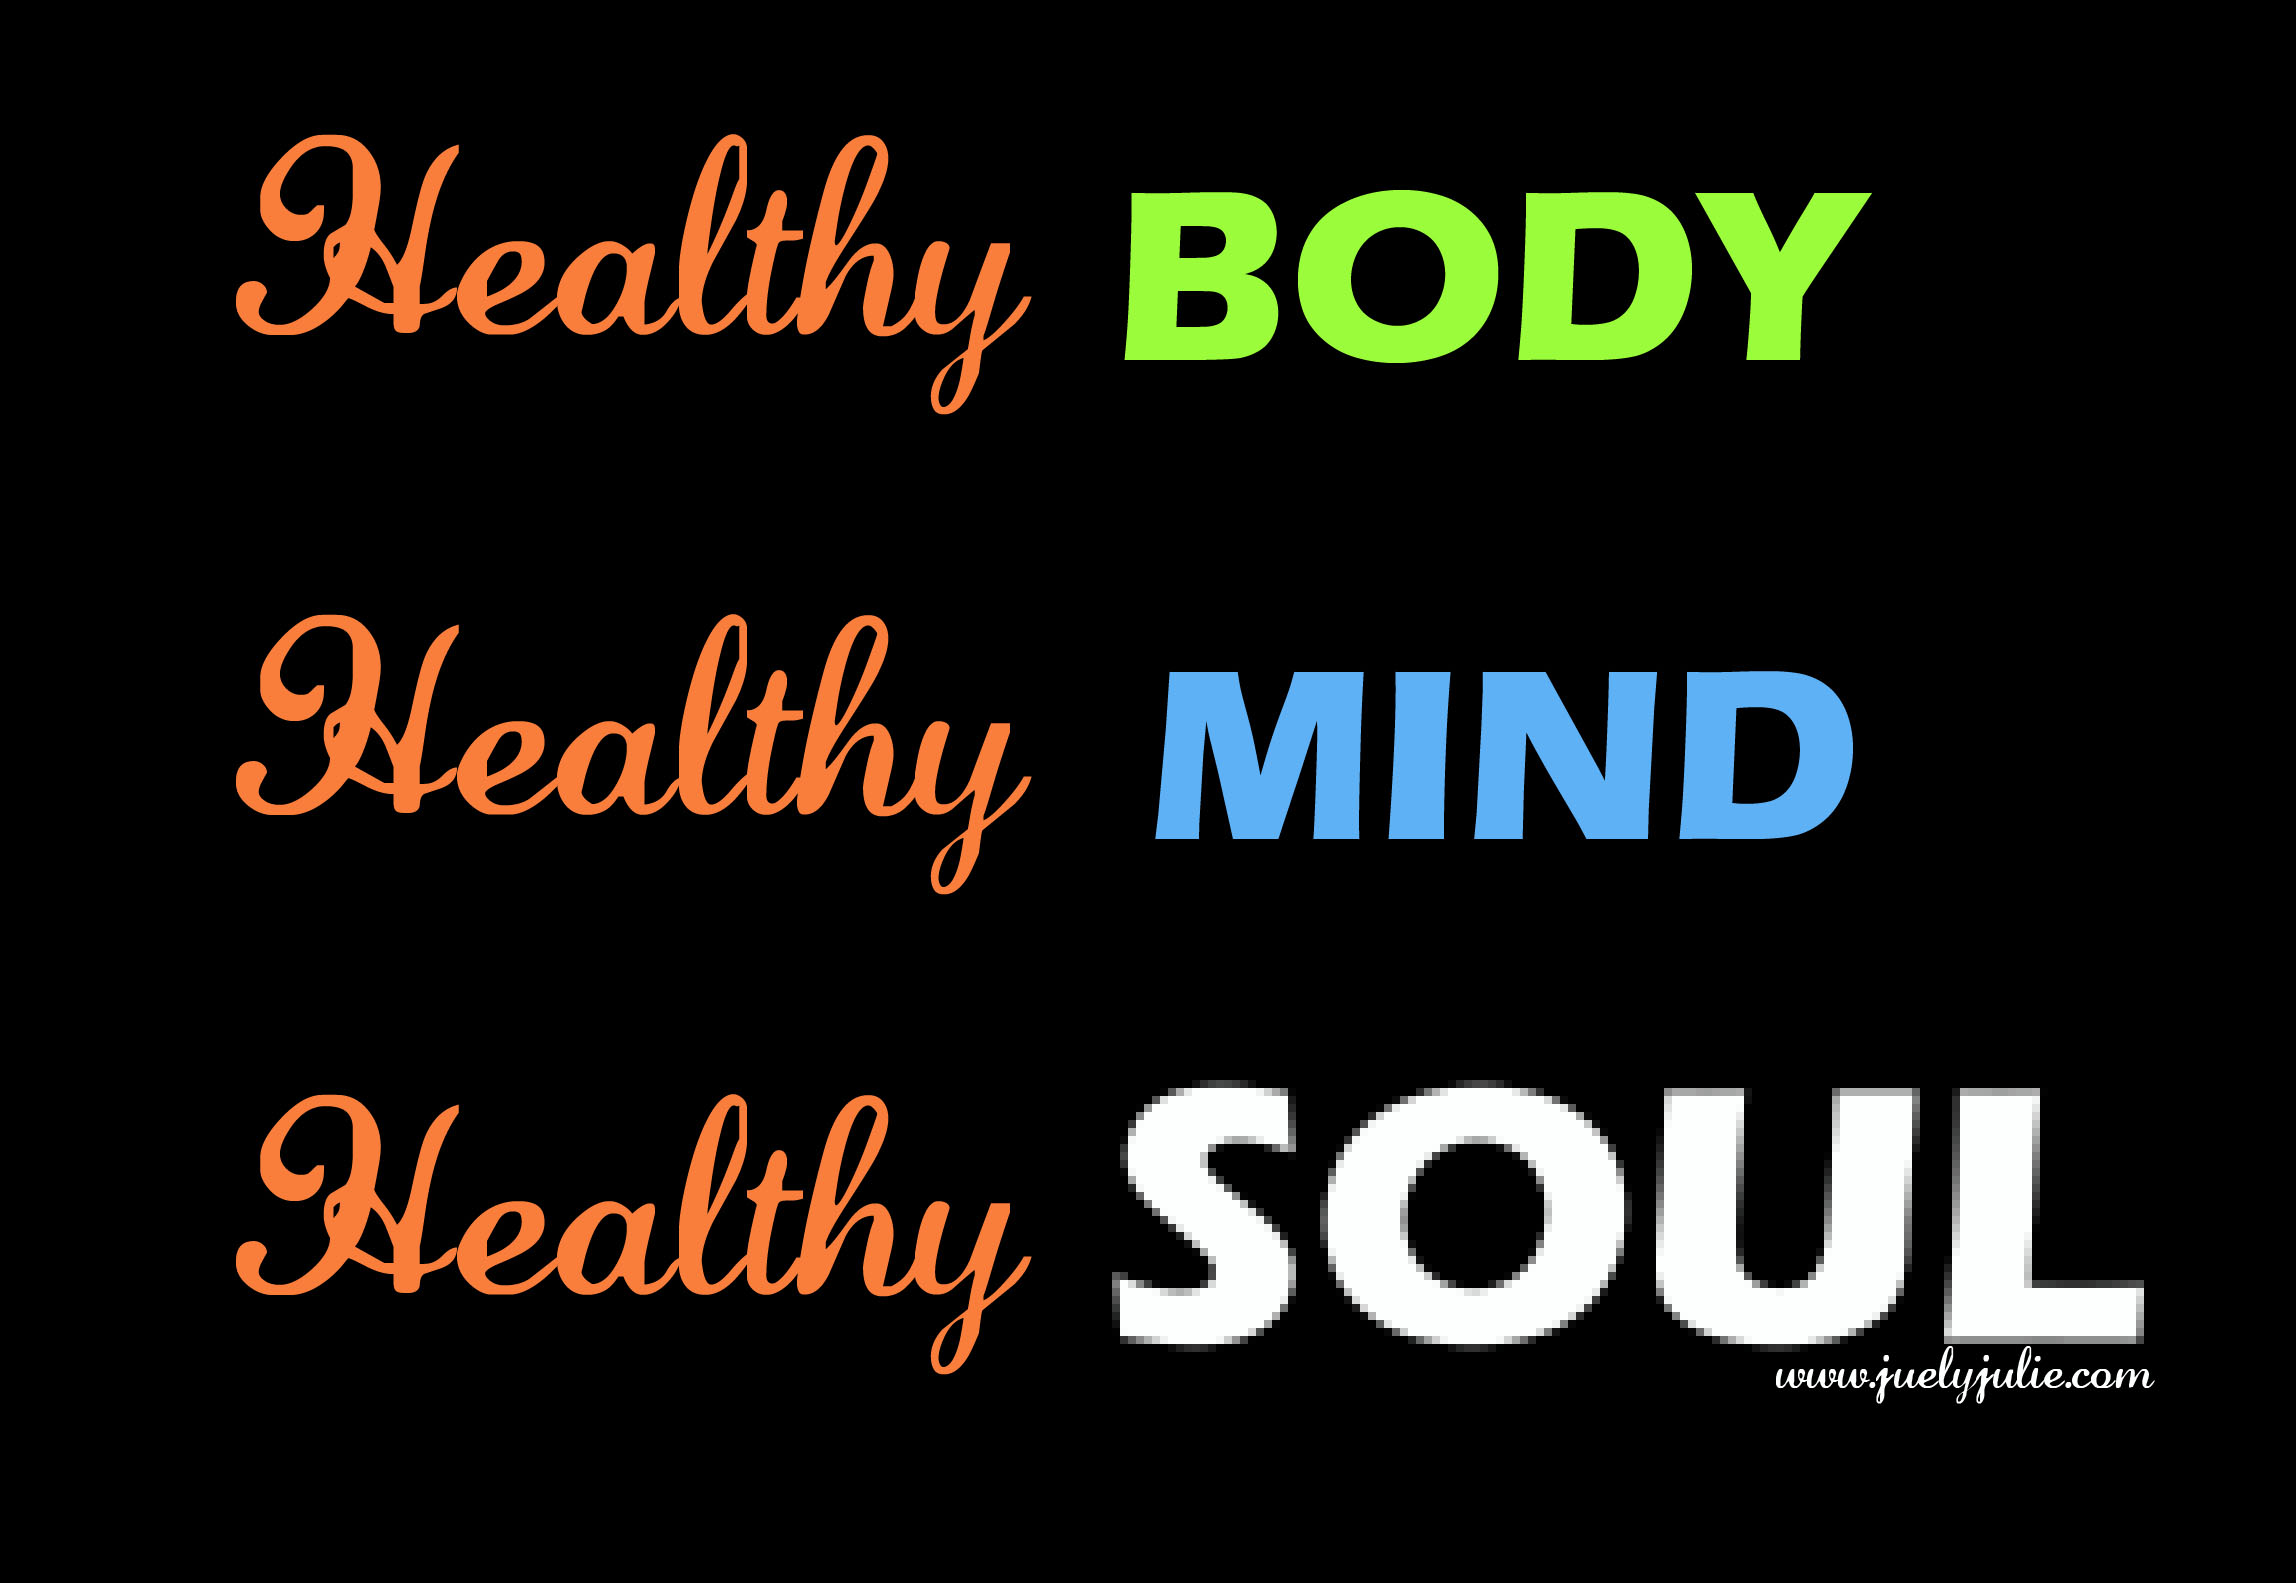 healthy mind dwells in healthy body Essay on healthy mind dwells in a healthy body 10 year plan essay writer constitution thematic essay gender issues in society essays on the great eritrea and the united nations and other essays online.